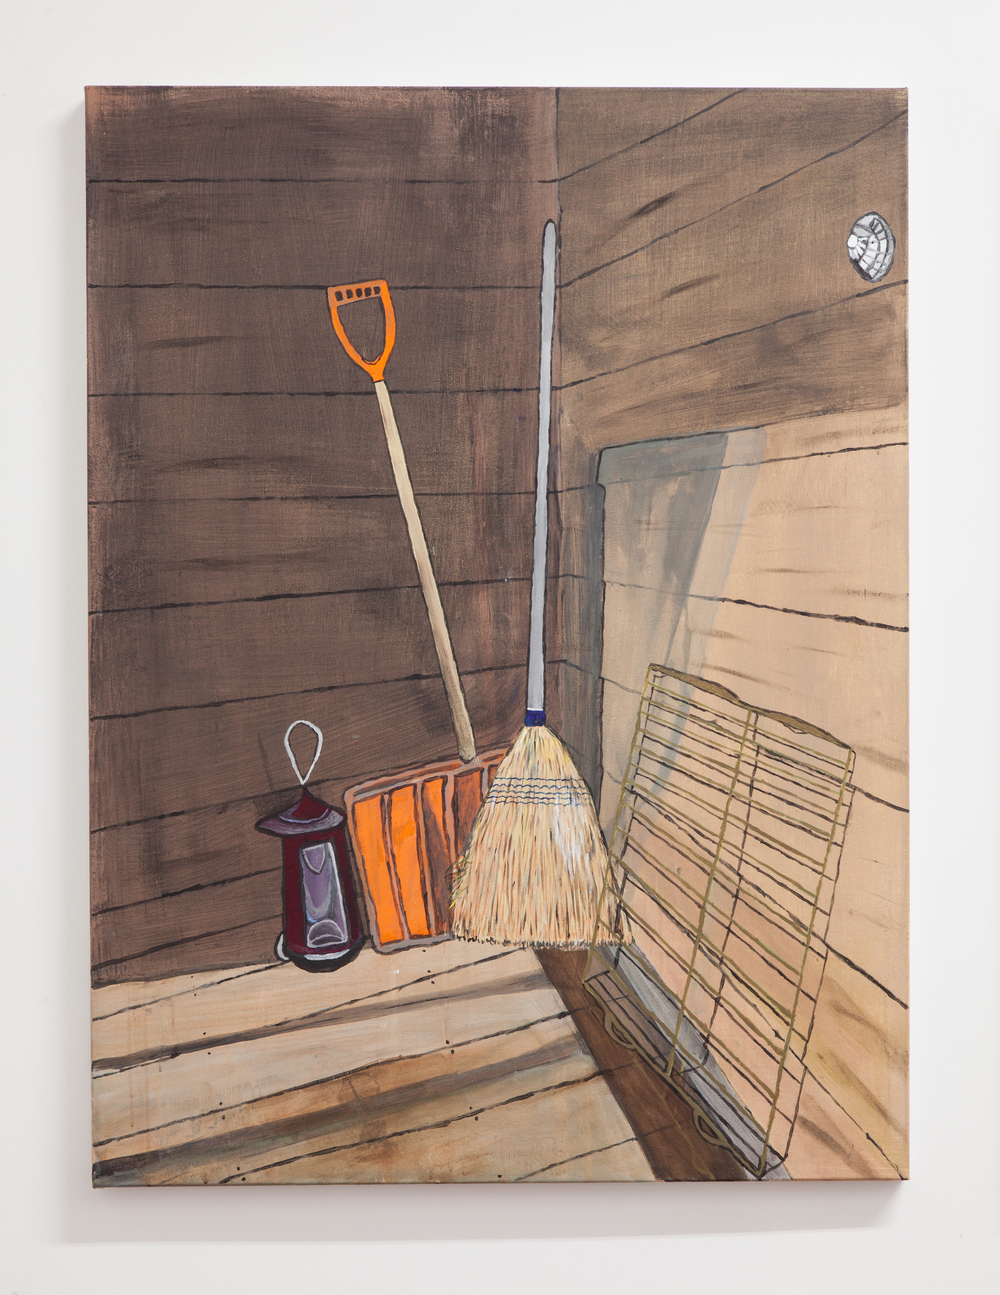 Jocko Weyland,  Shovel and Broom , 2014, acrylic on canvas, 48 x 36 in